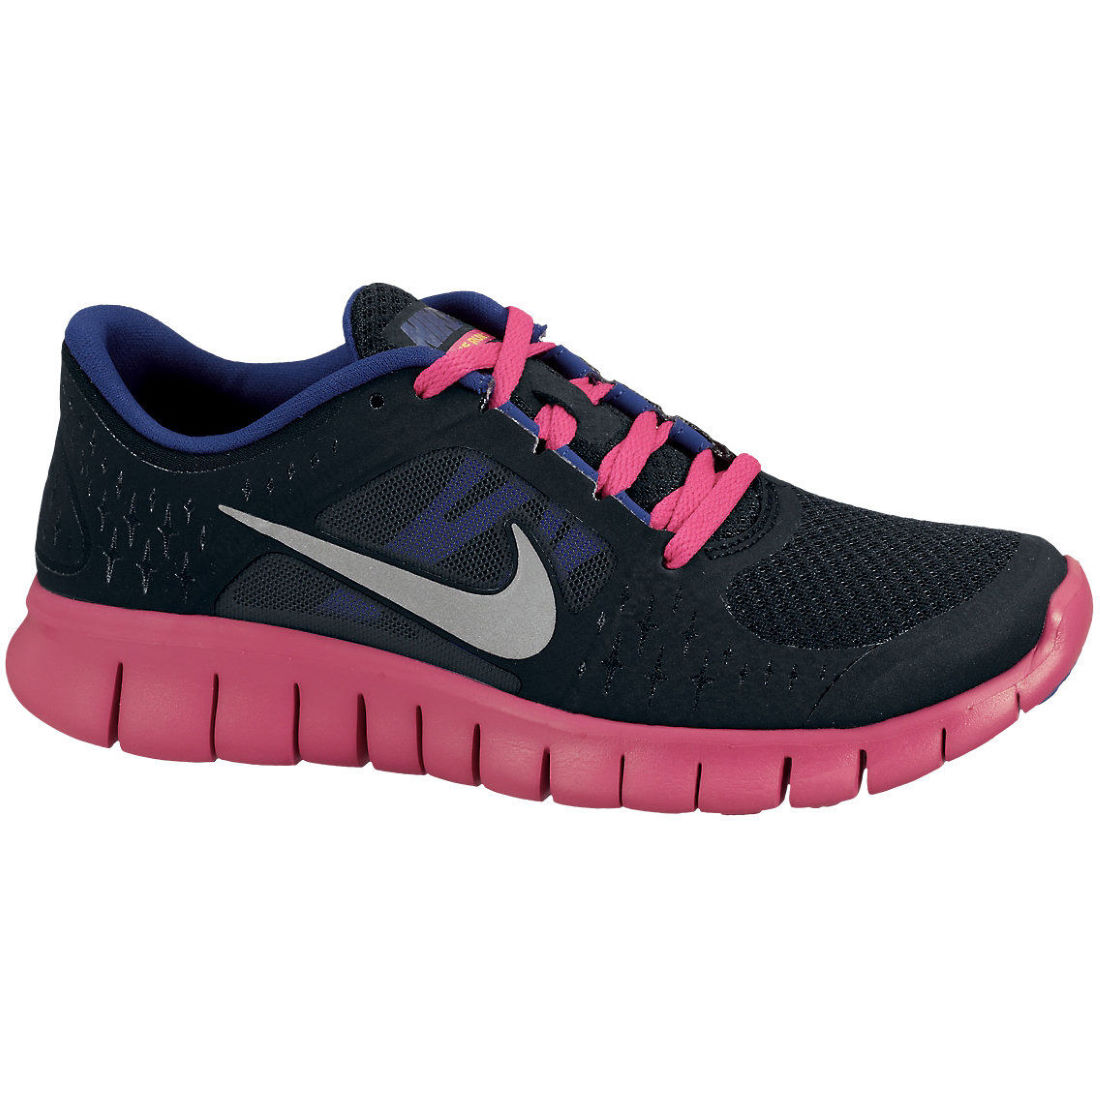 Wiggle | Nike Kids Free Run 3 GS Shoes AW12 | Fitness Shoes